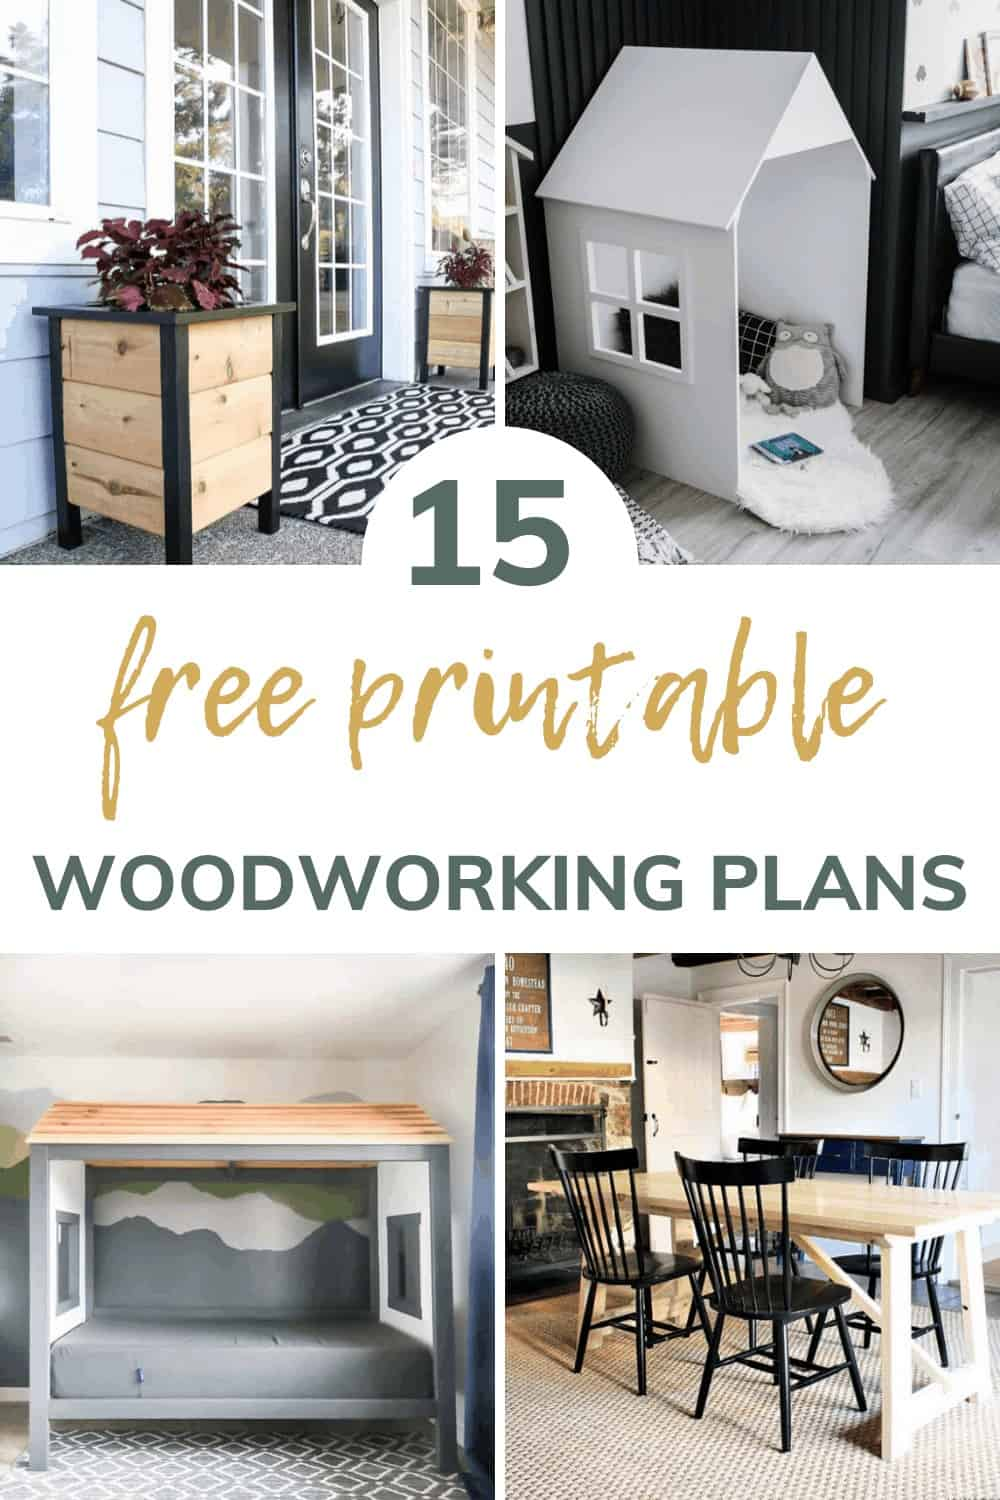 shows 4 woodworking projects, such as, planters, playhouse, cabin bed, and table with overlay text that says 15 free printable woodworking plans